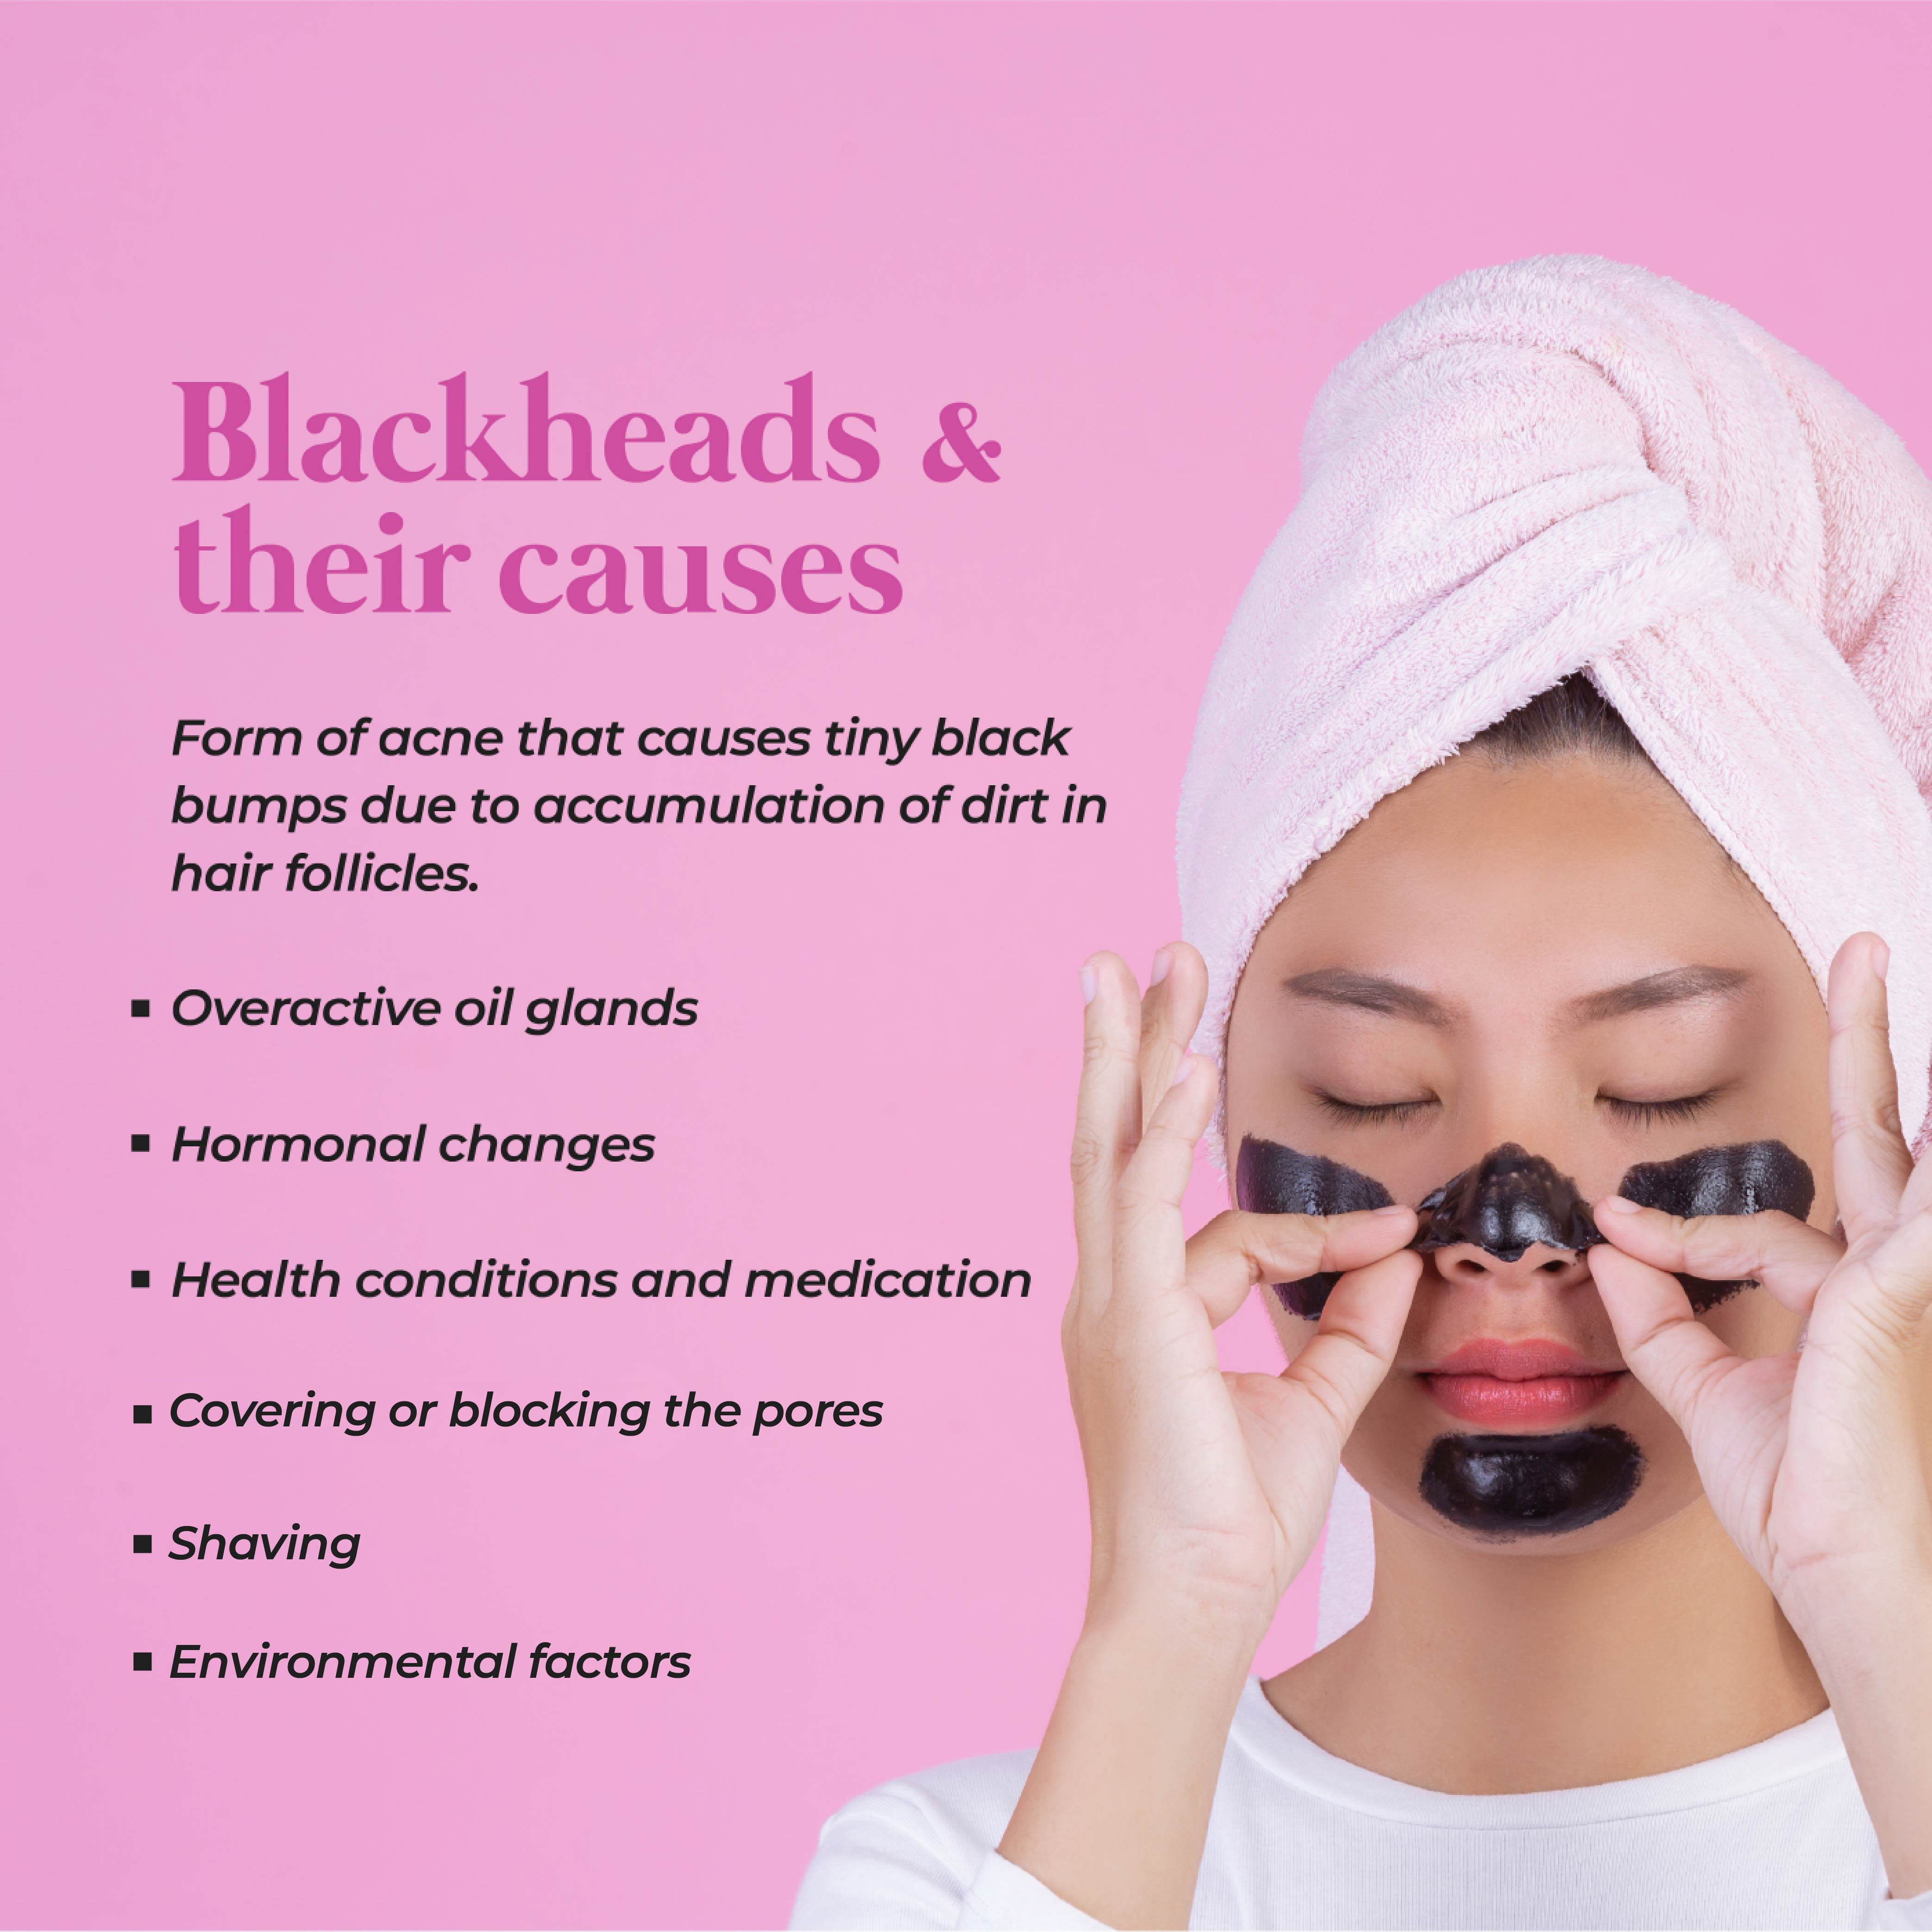 This is an image of what are blackheads and their causes